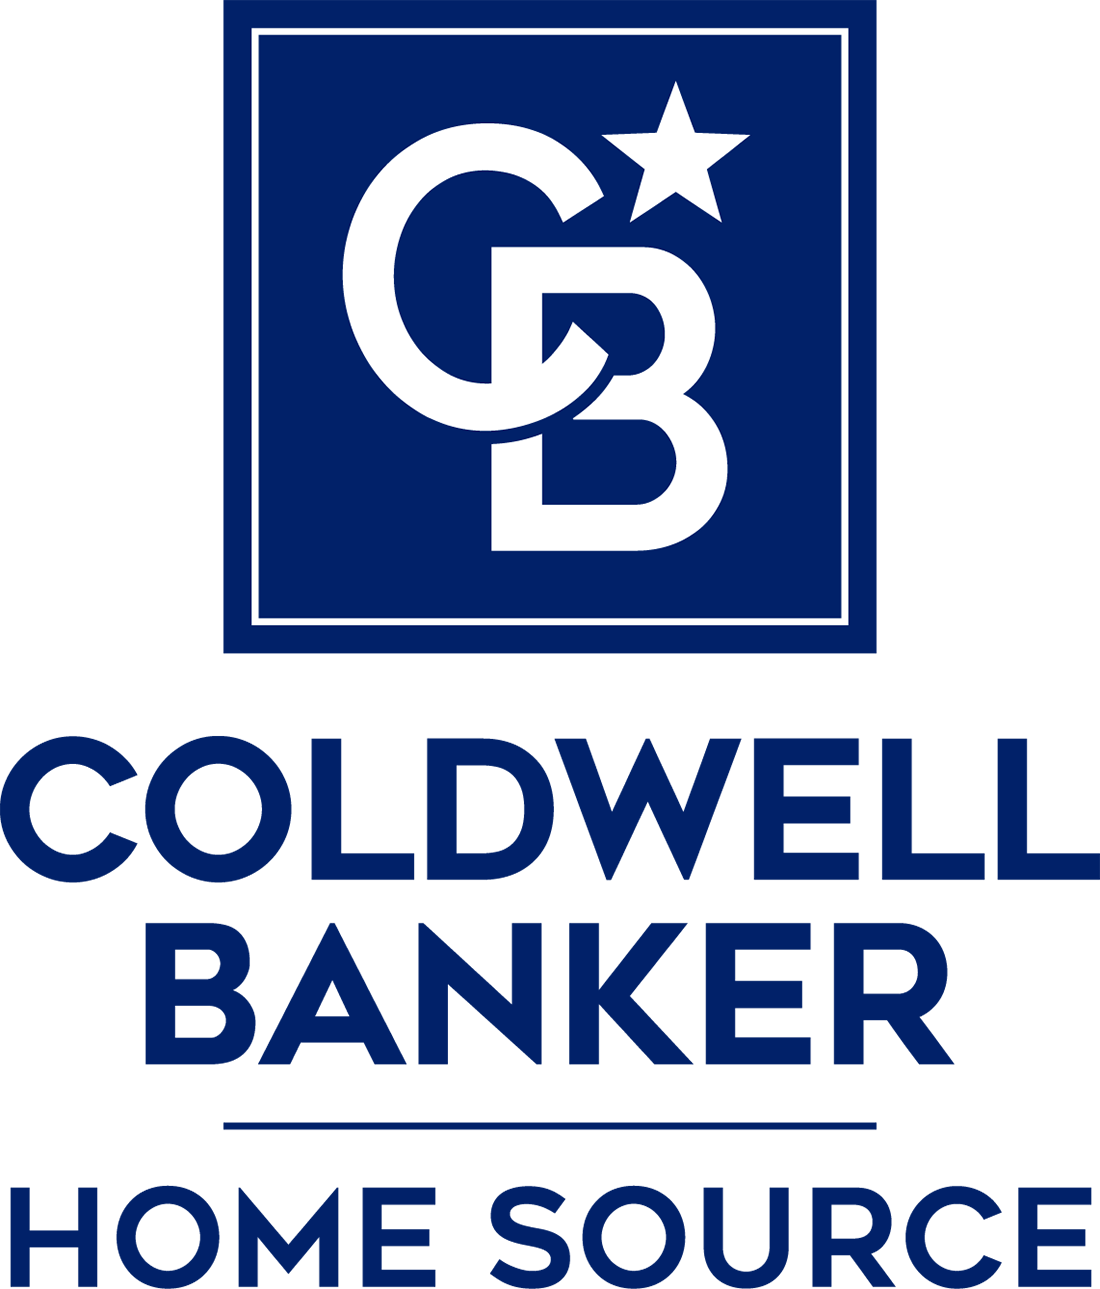 Jose Perez - Coldwell Banker Home Source Logo